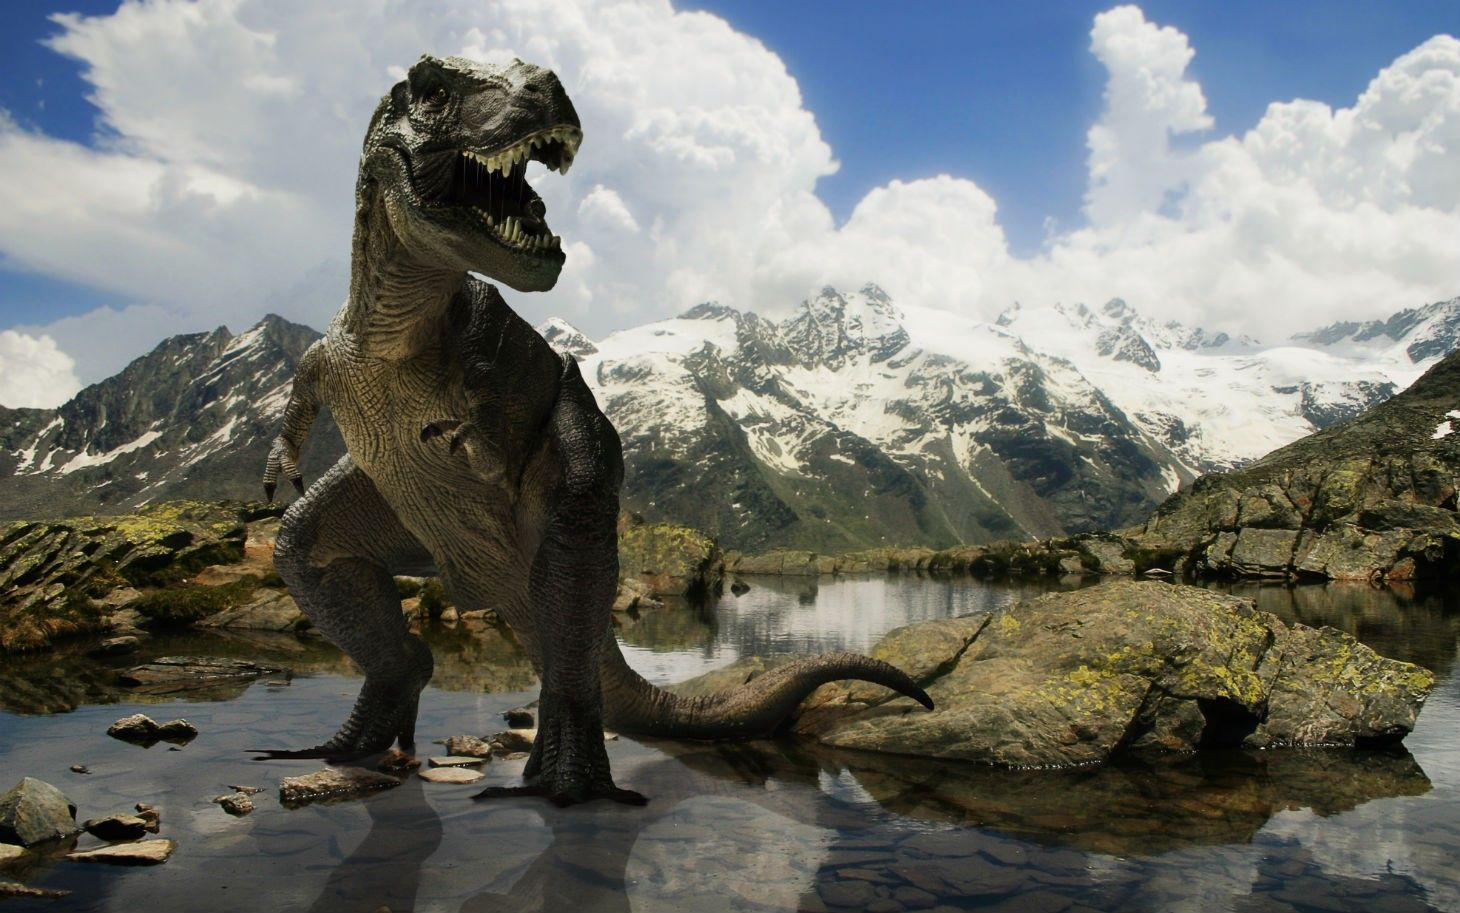 The giants of Patagonia traveling dinosaur exibition in Rijeka